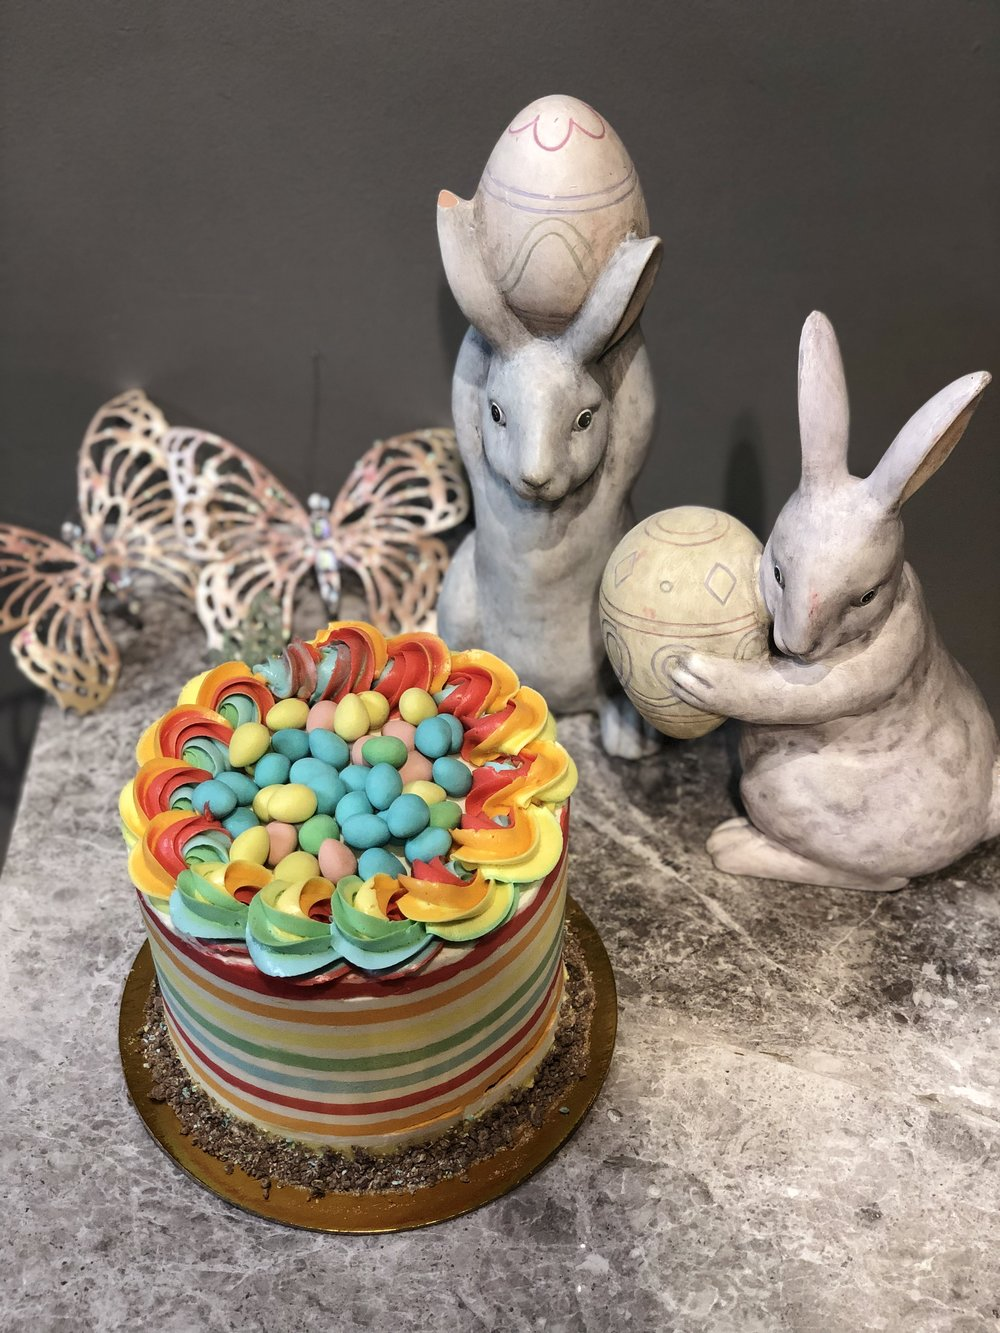 The Bunnies want the Cake